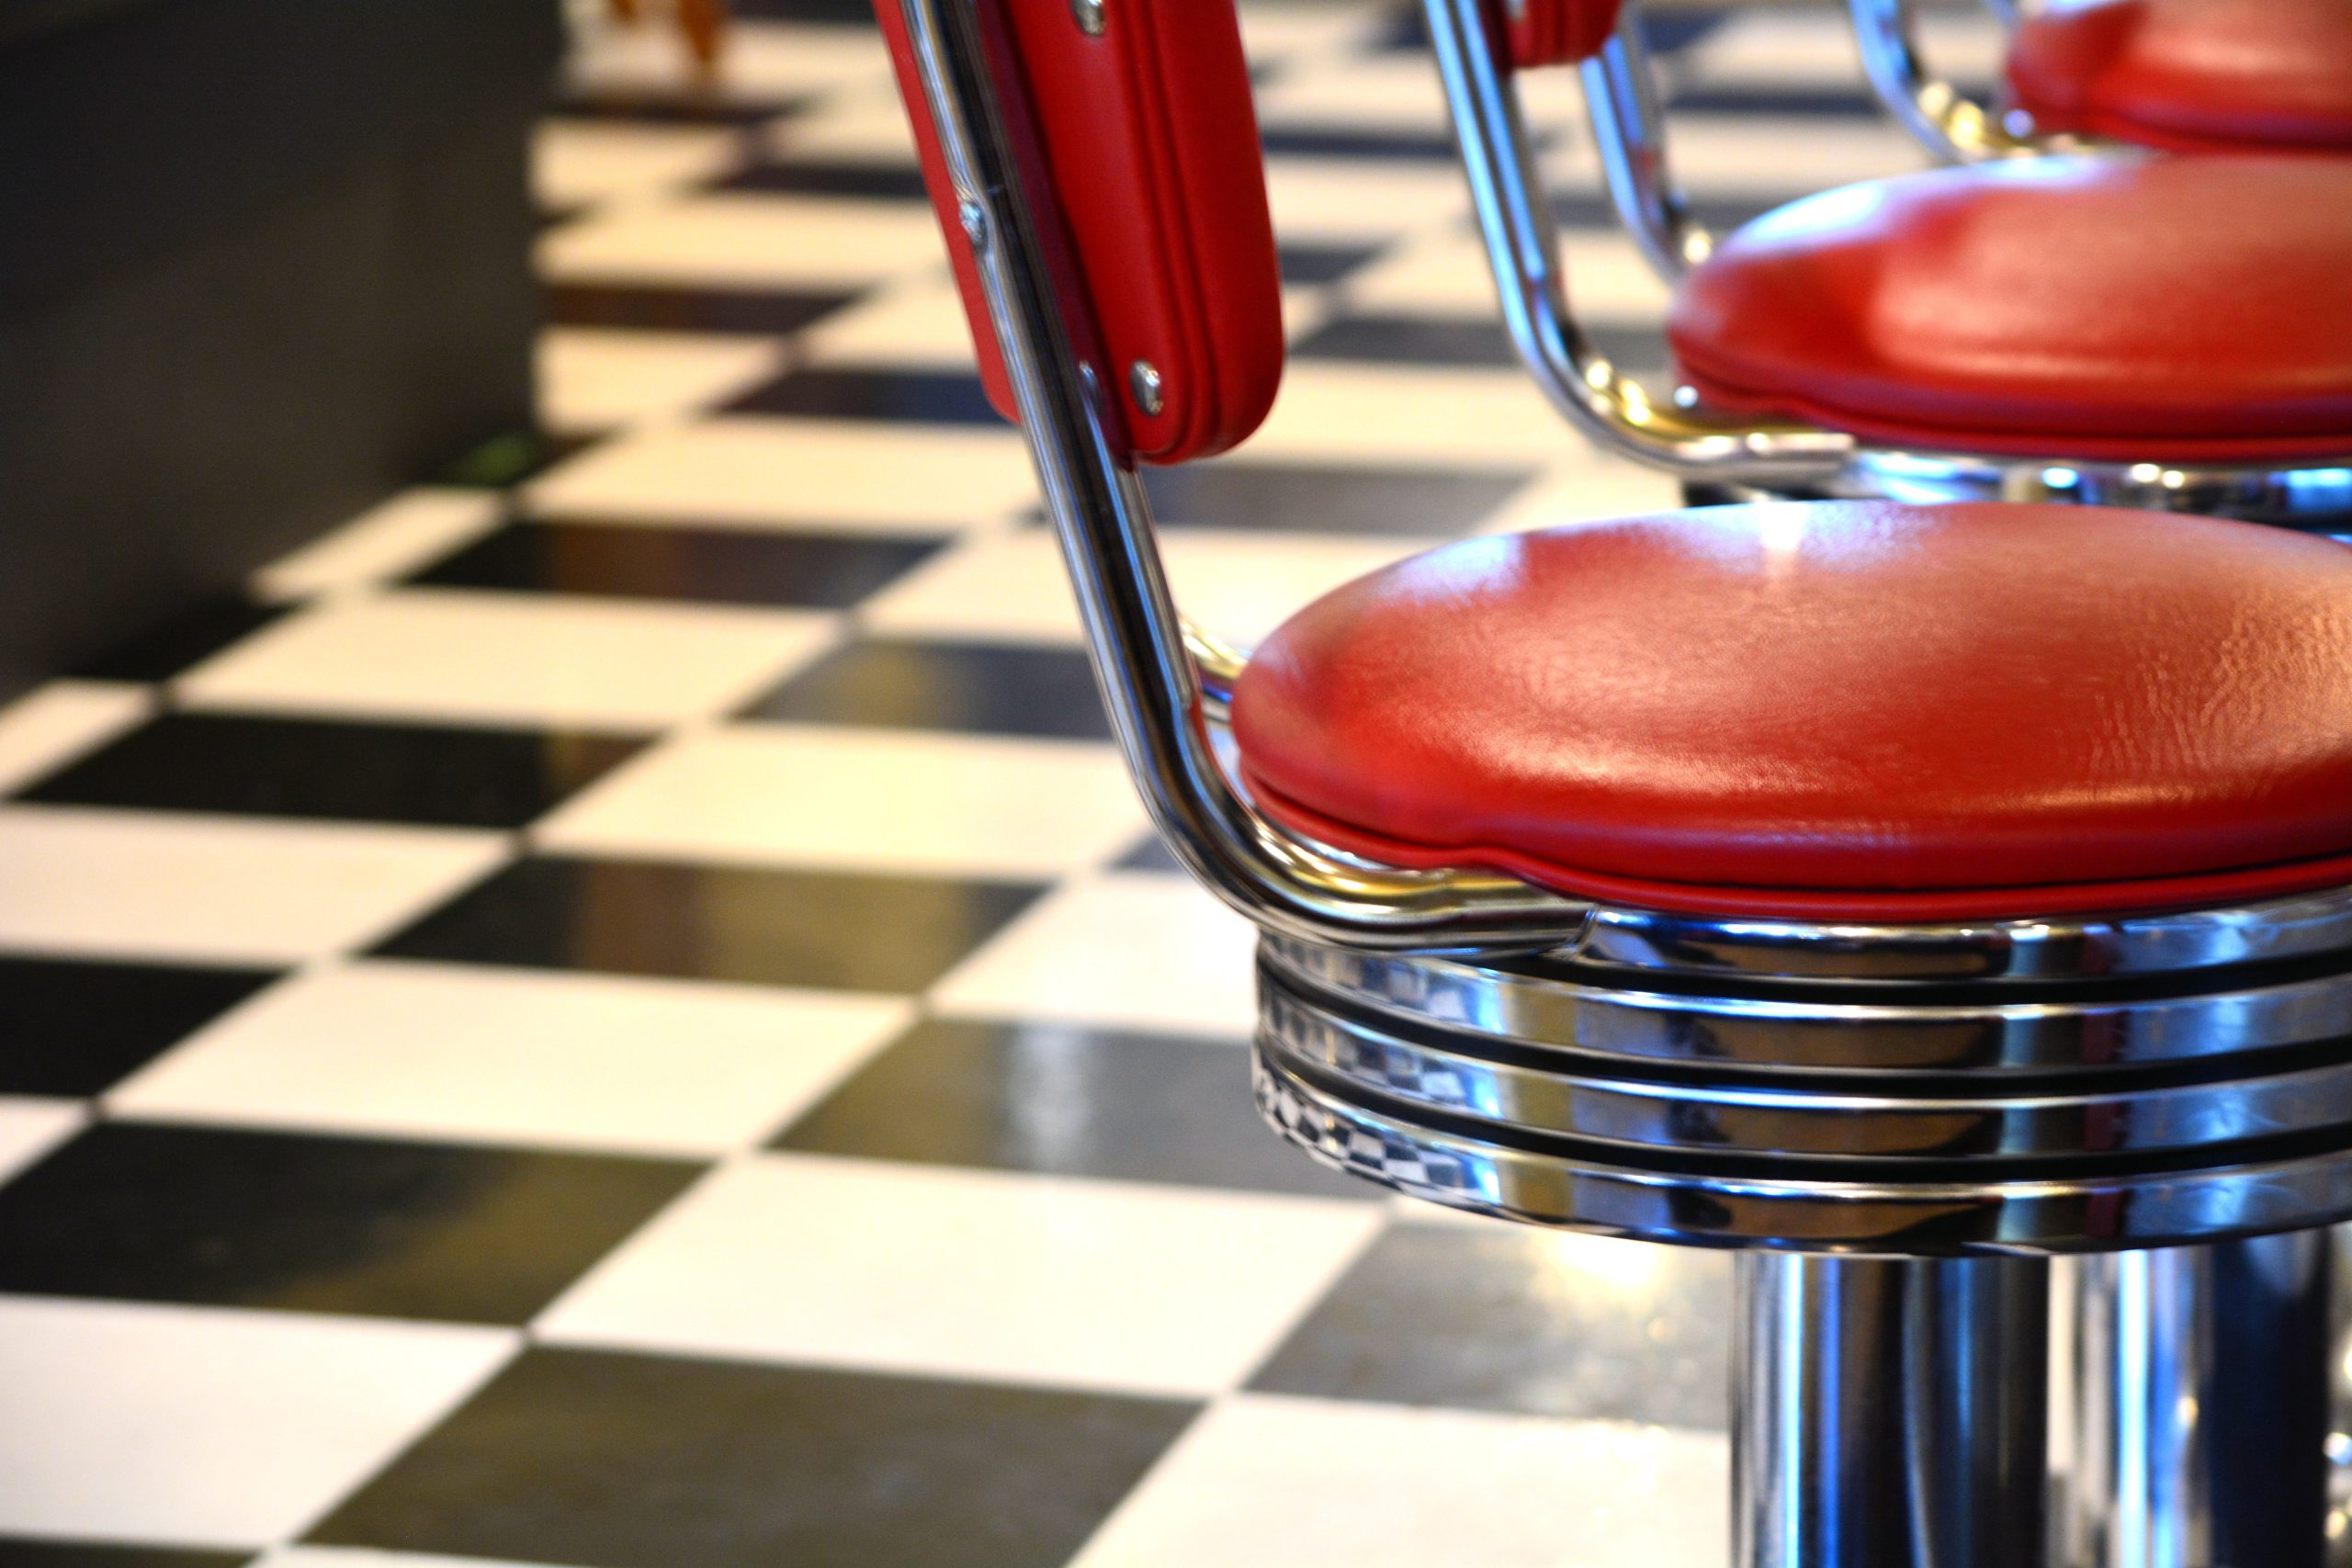 stools in an old fashioned diner